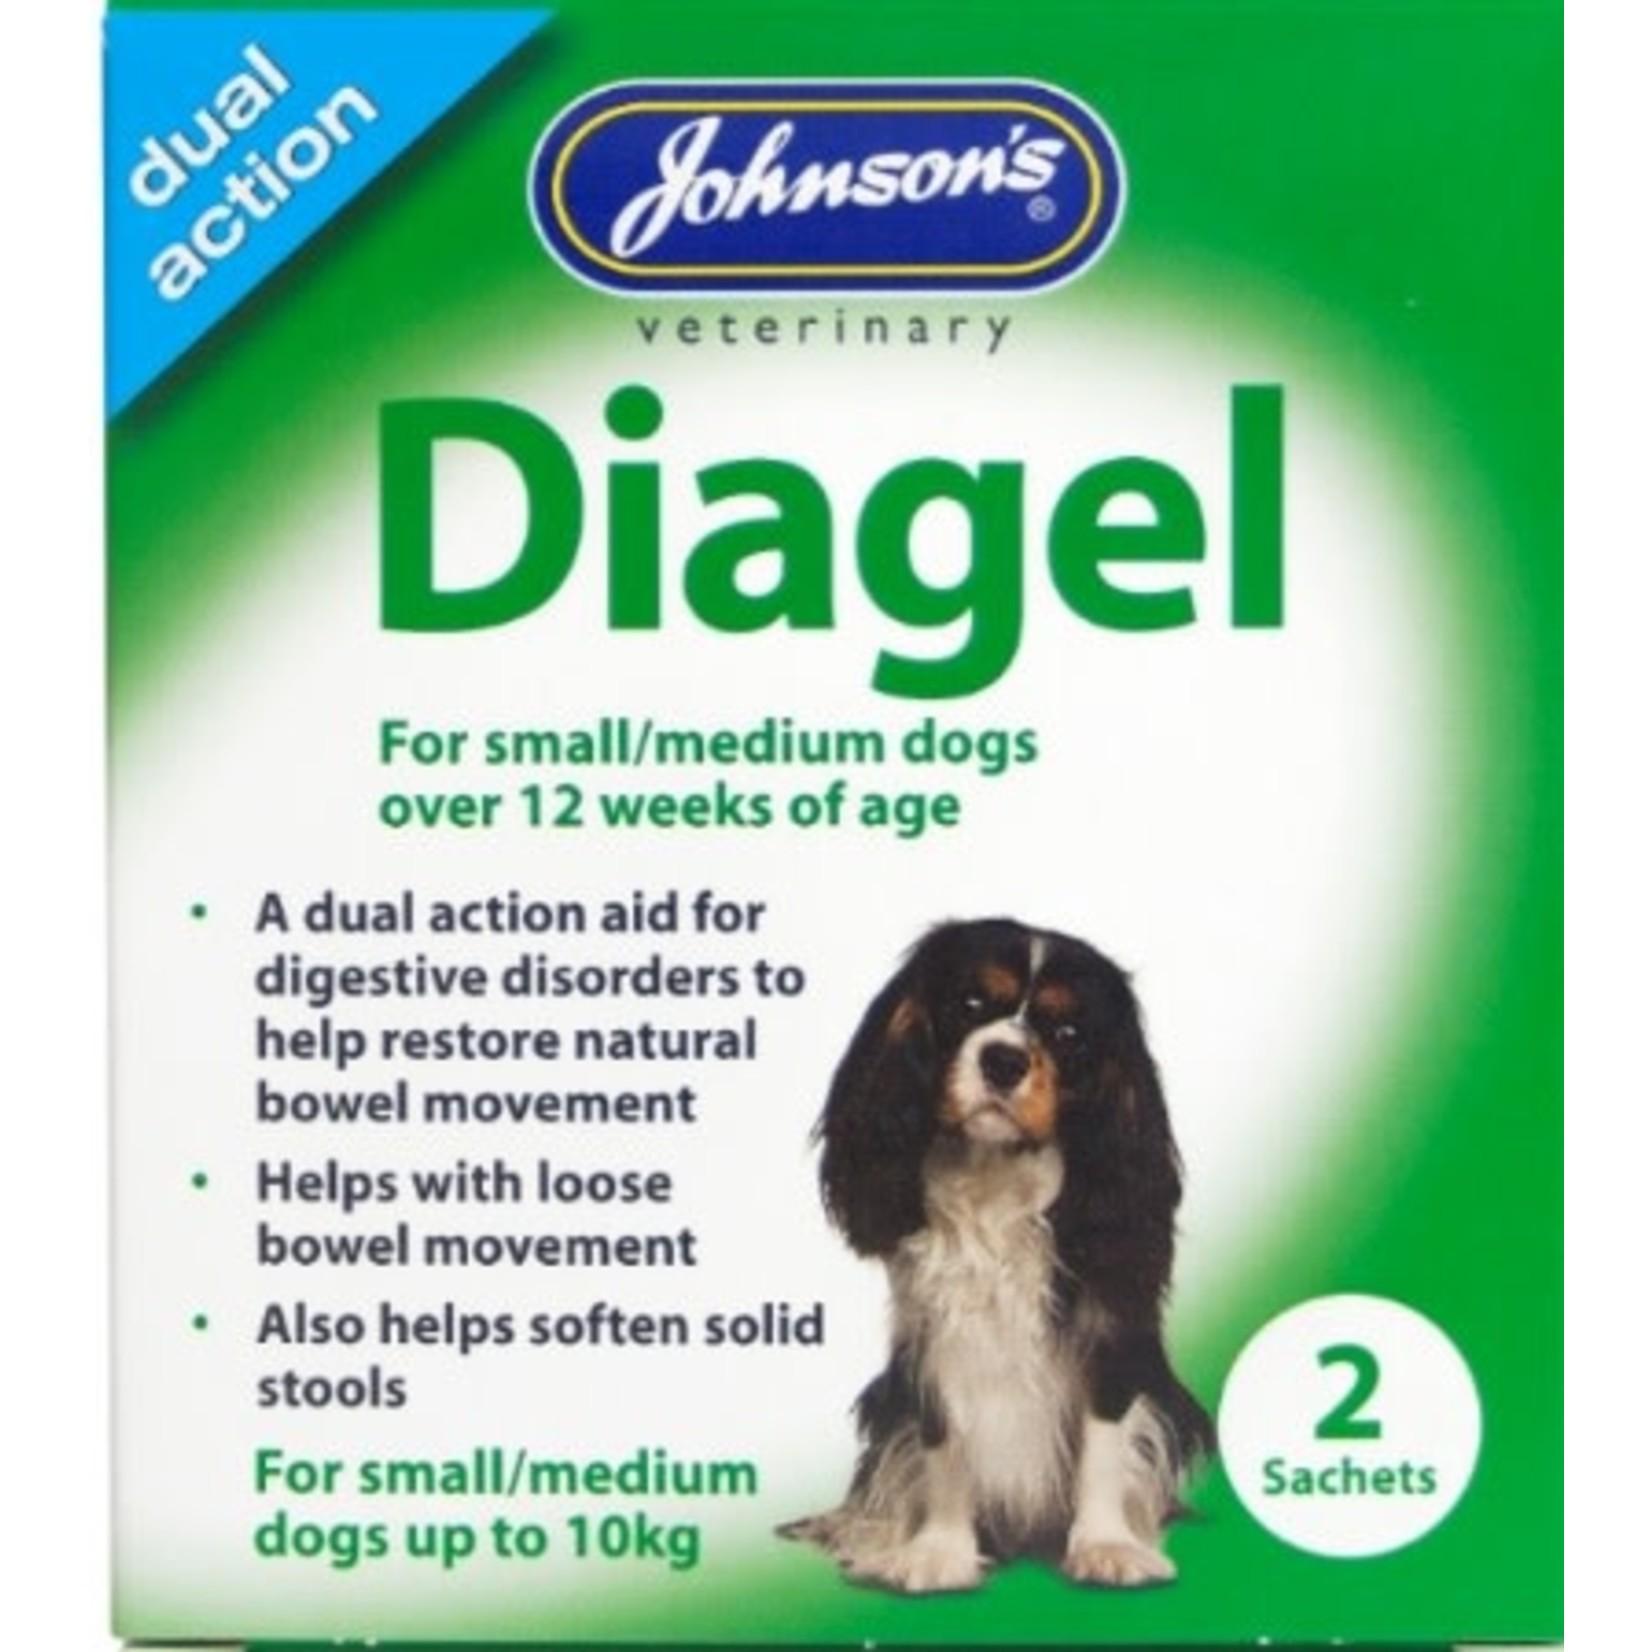 Johnsons Veterinary Diagel Dual Action Aid for Digestive Disorders in Dogs